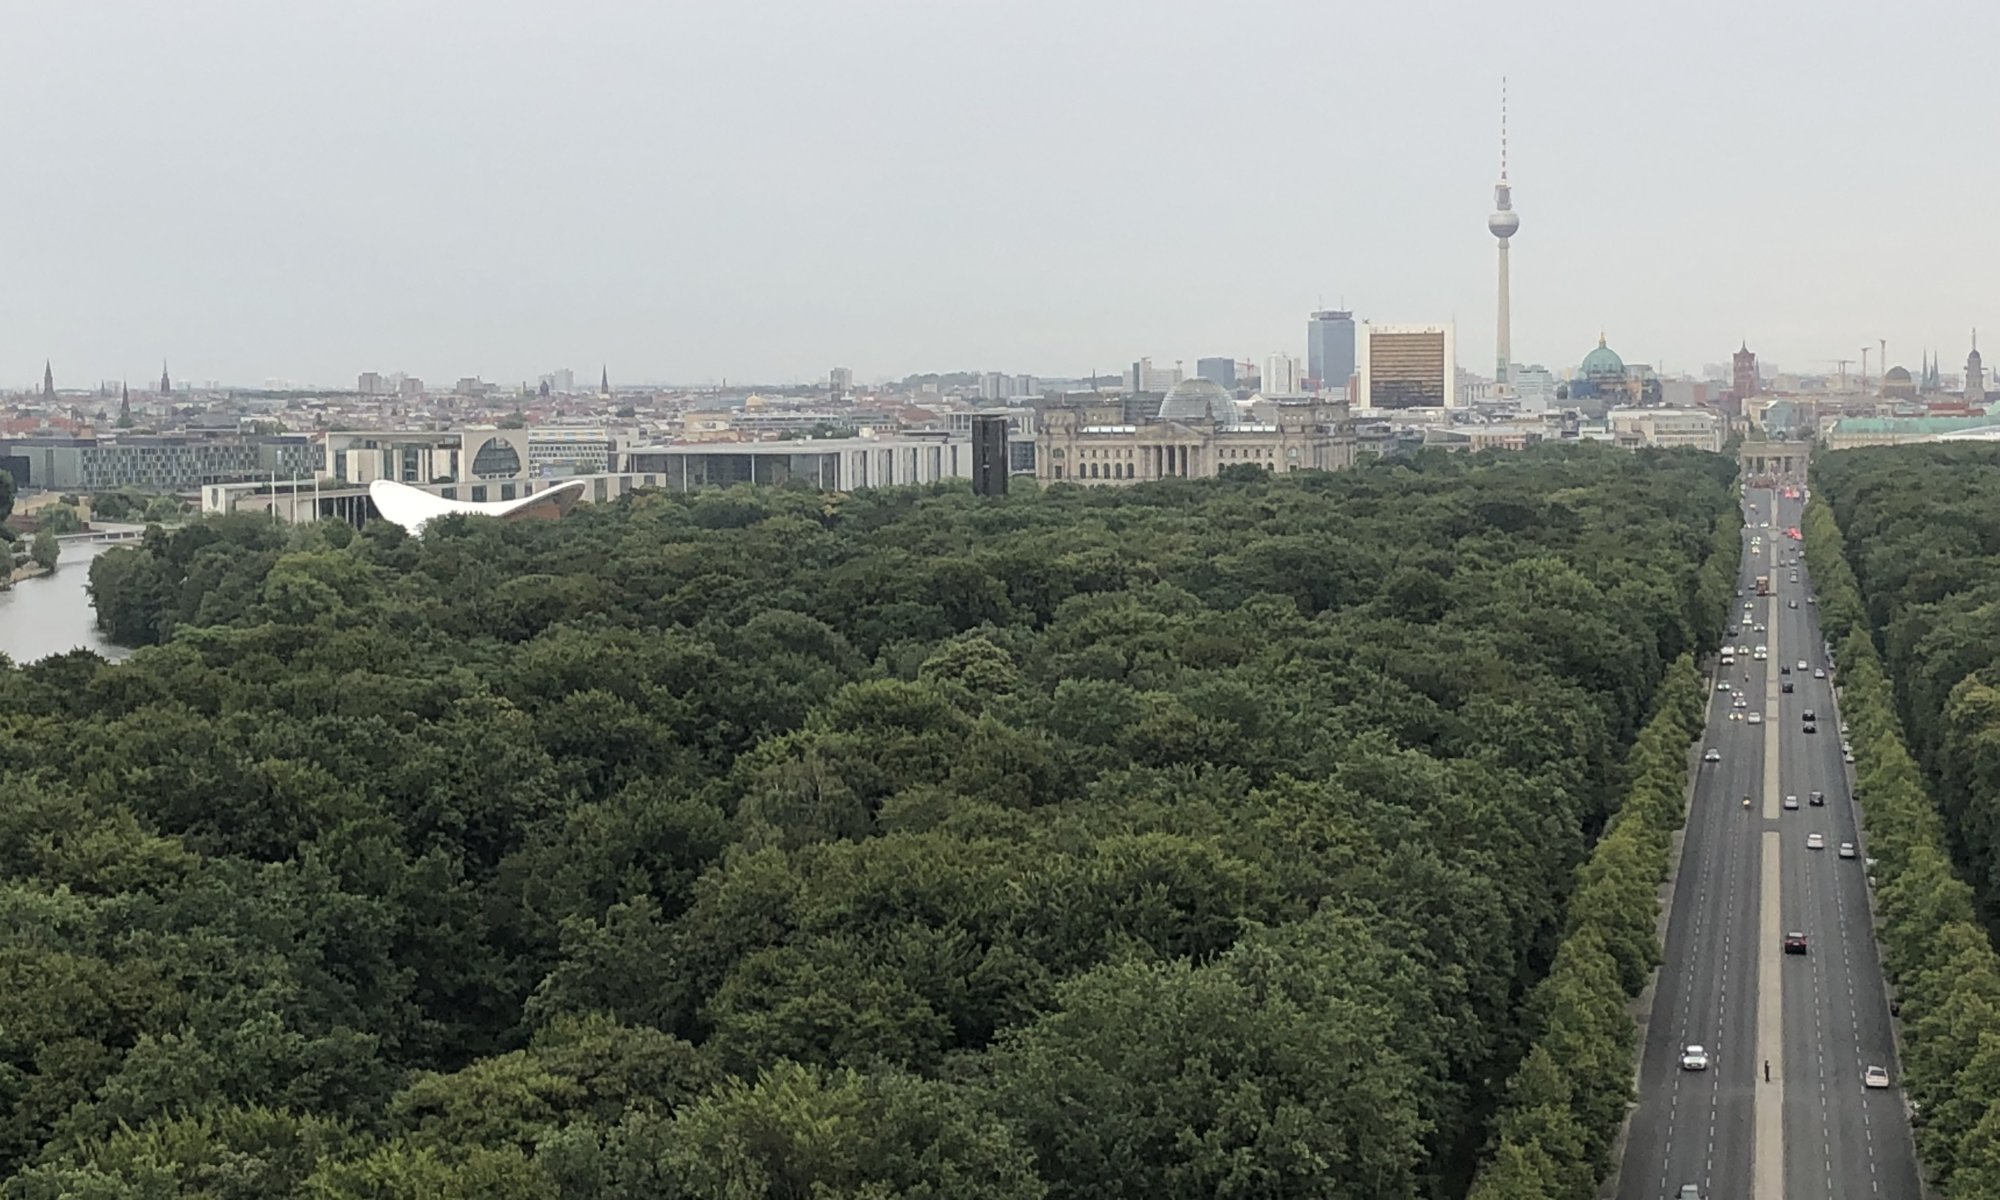 View from the Siegessäule, Berlin